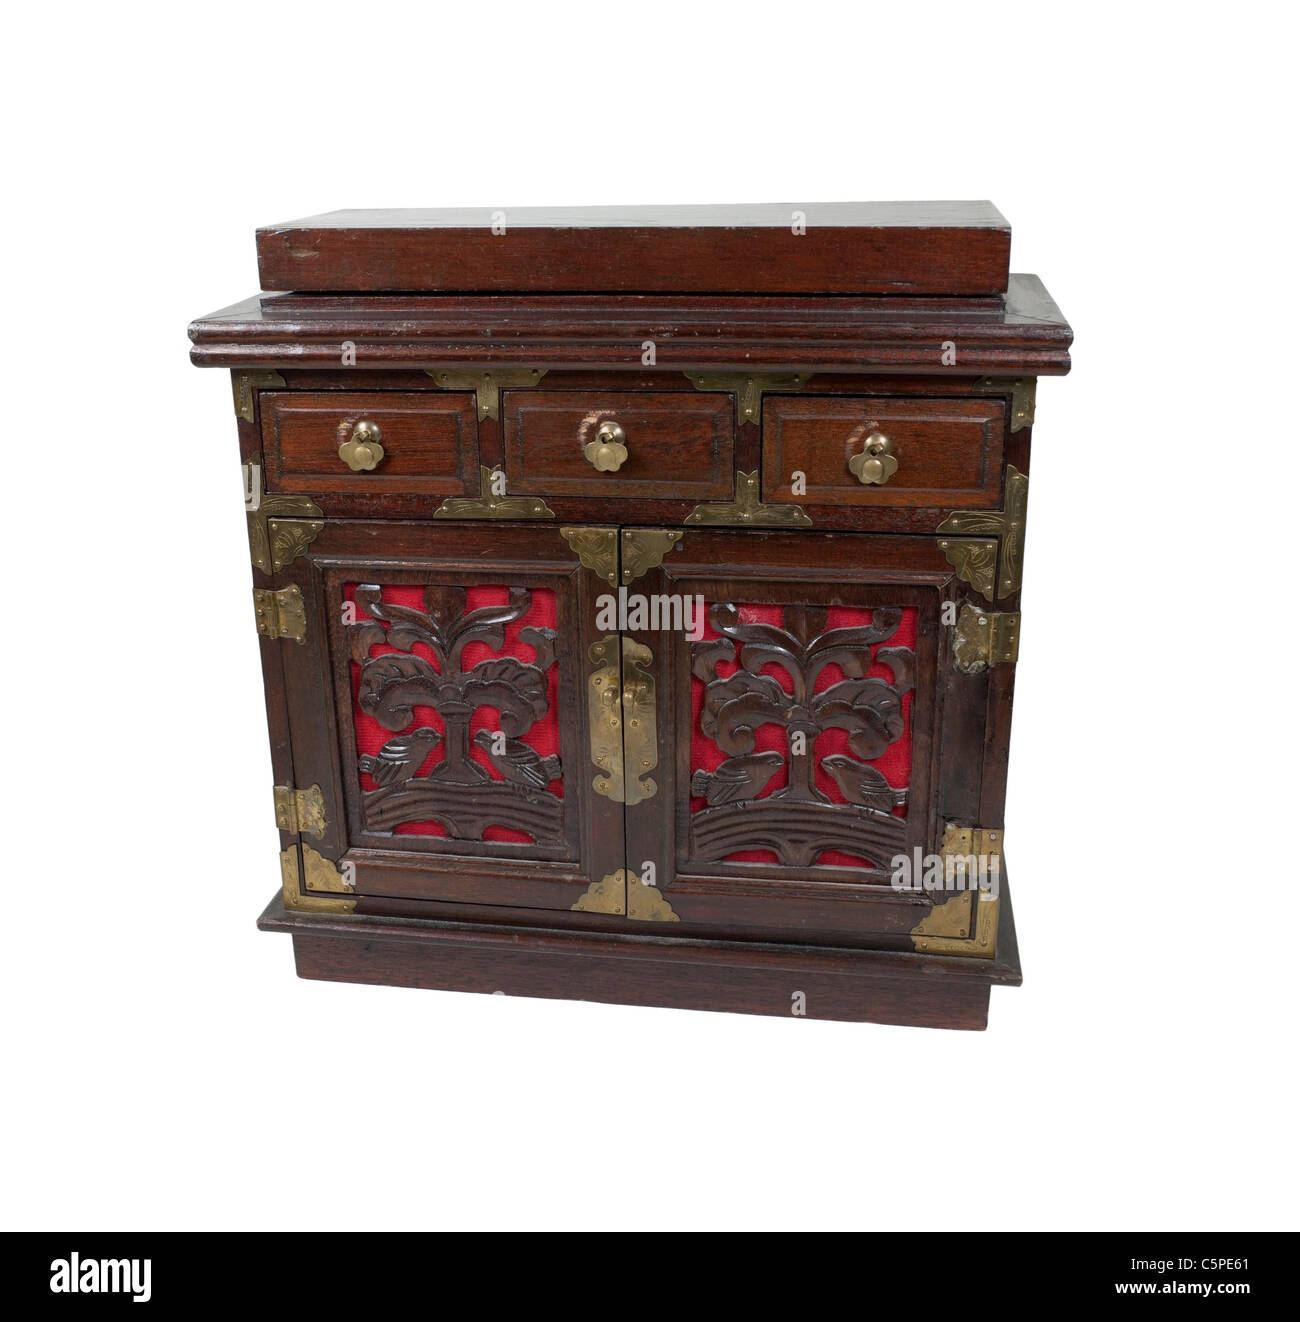 An old antique wooden and brass chest with small drawers for storing various ingredients - path included - Stock Image